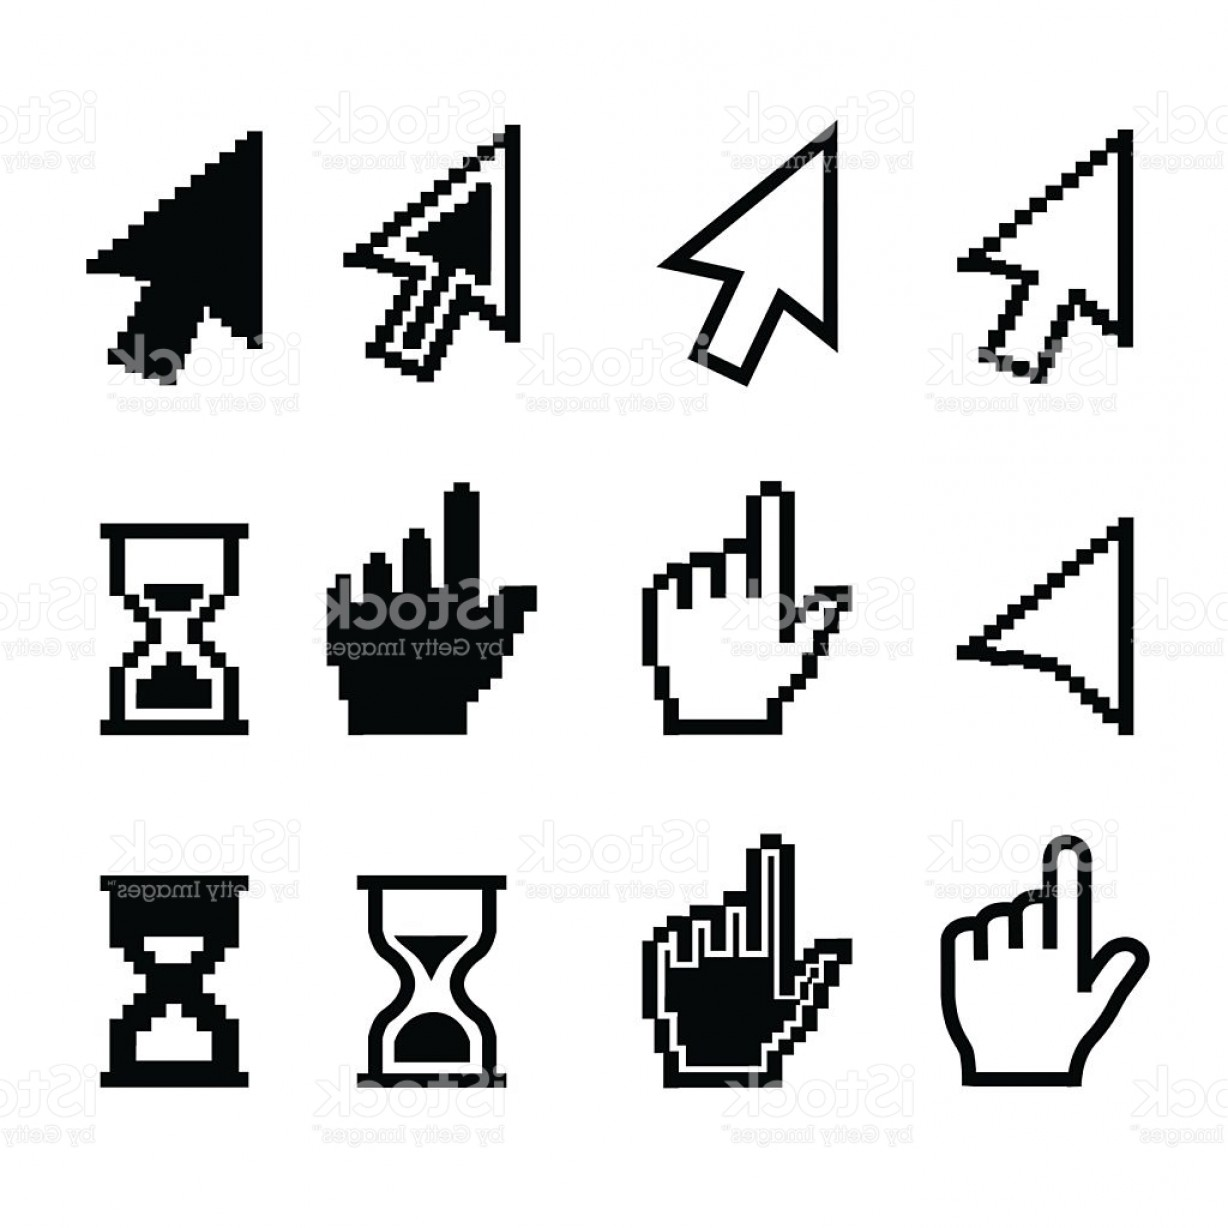 Computer Pointer Vector: Pixel Cursors Icons Mouse Cursor Hand Pointer Hourglass Illustration Gm